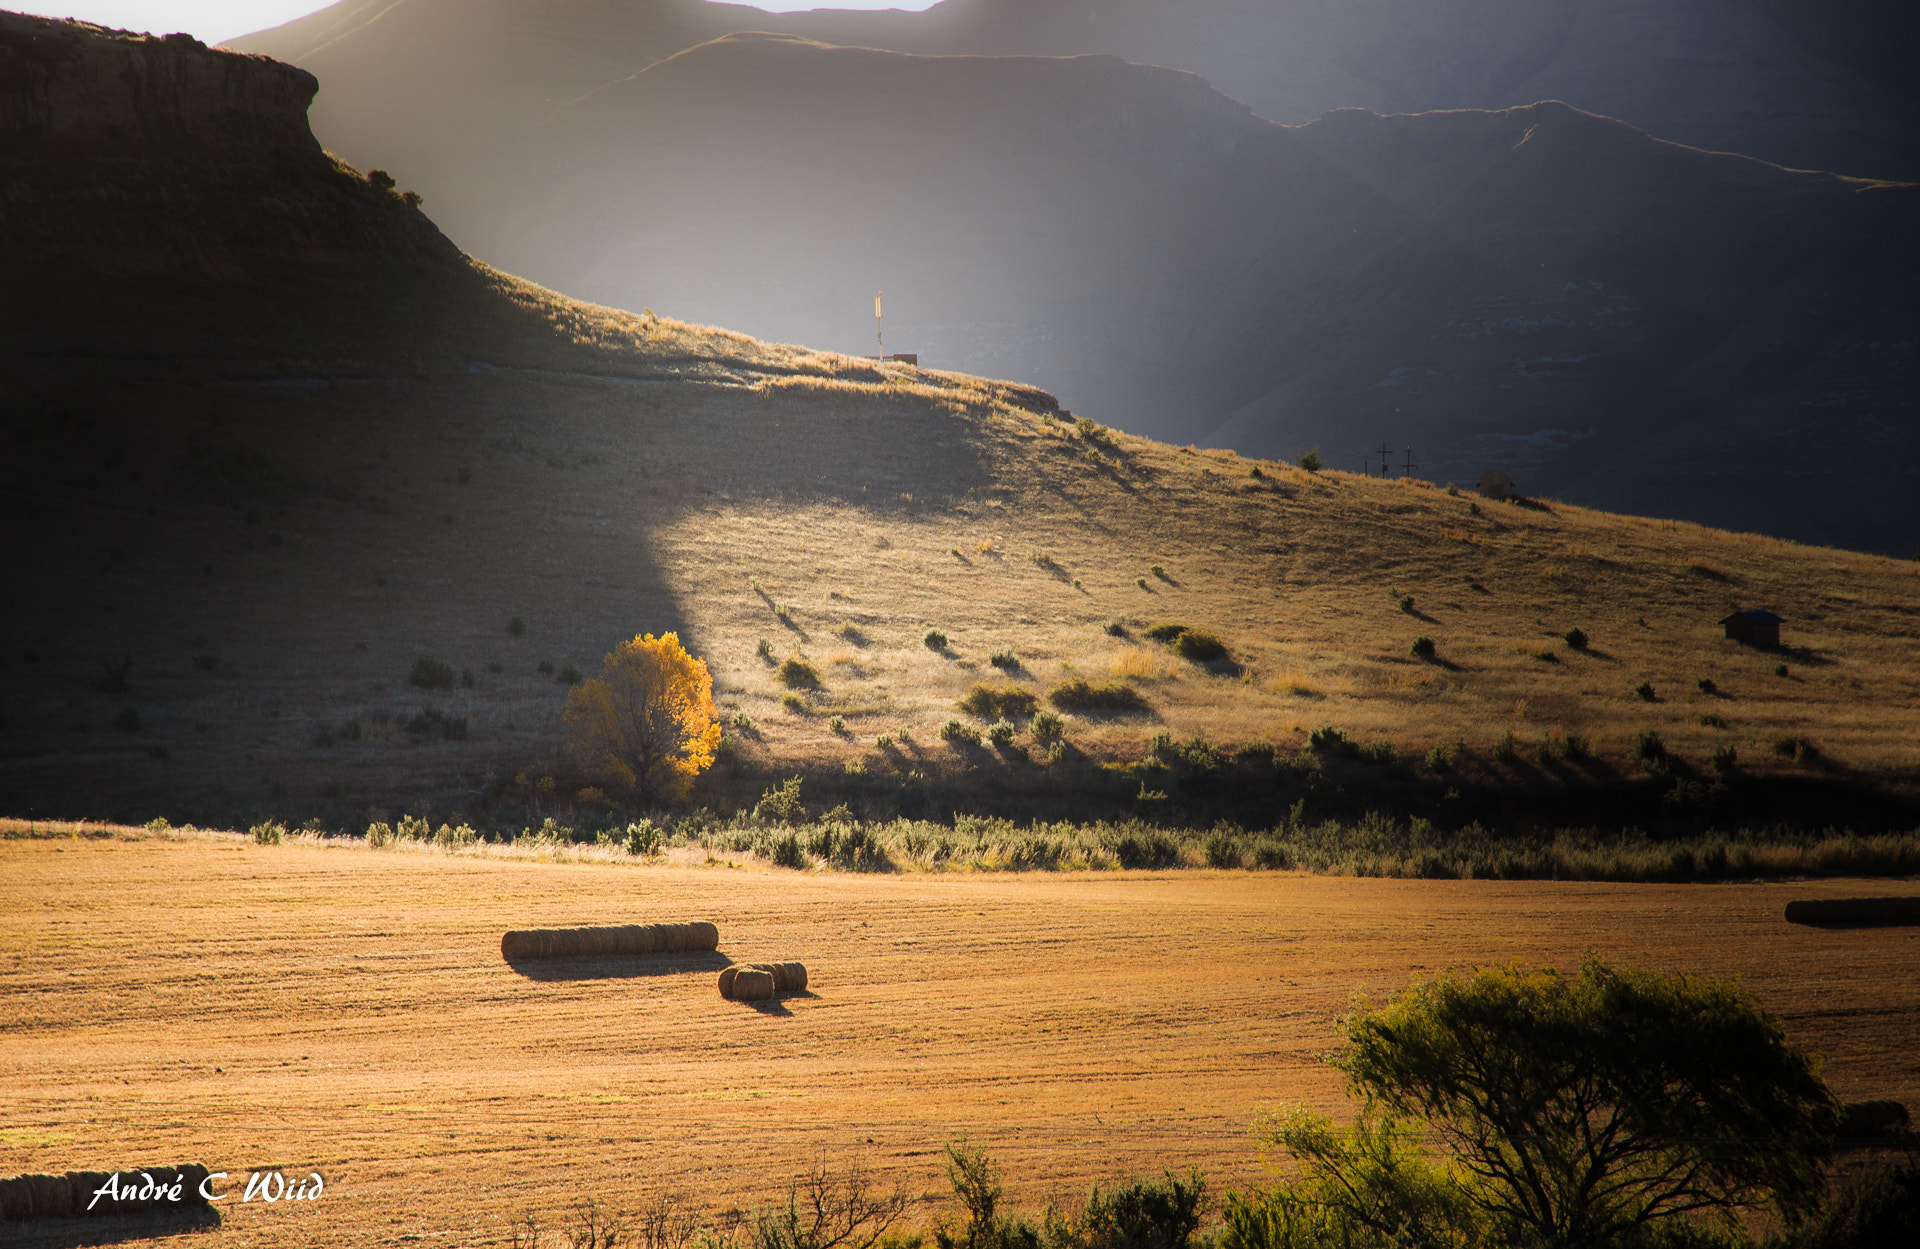 Photograph Clarens scenic by Andre Wiid on 500px